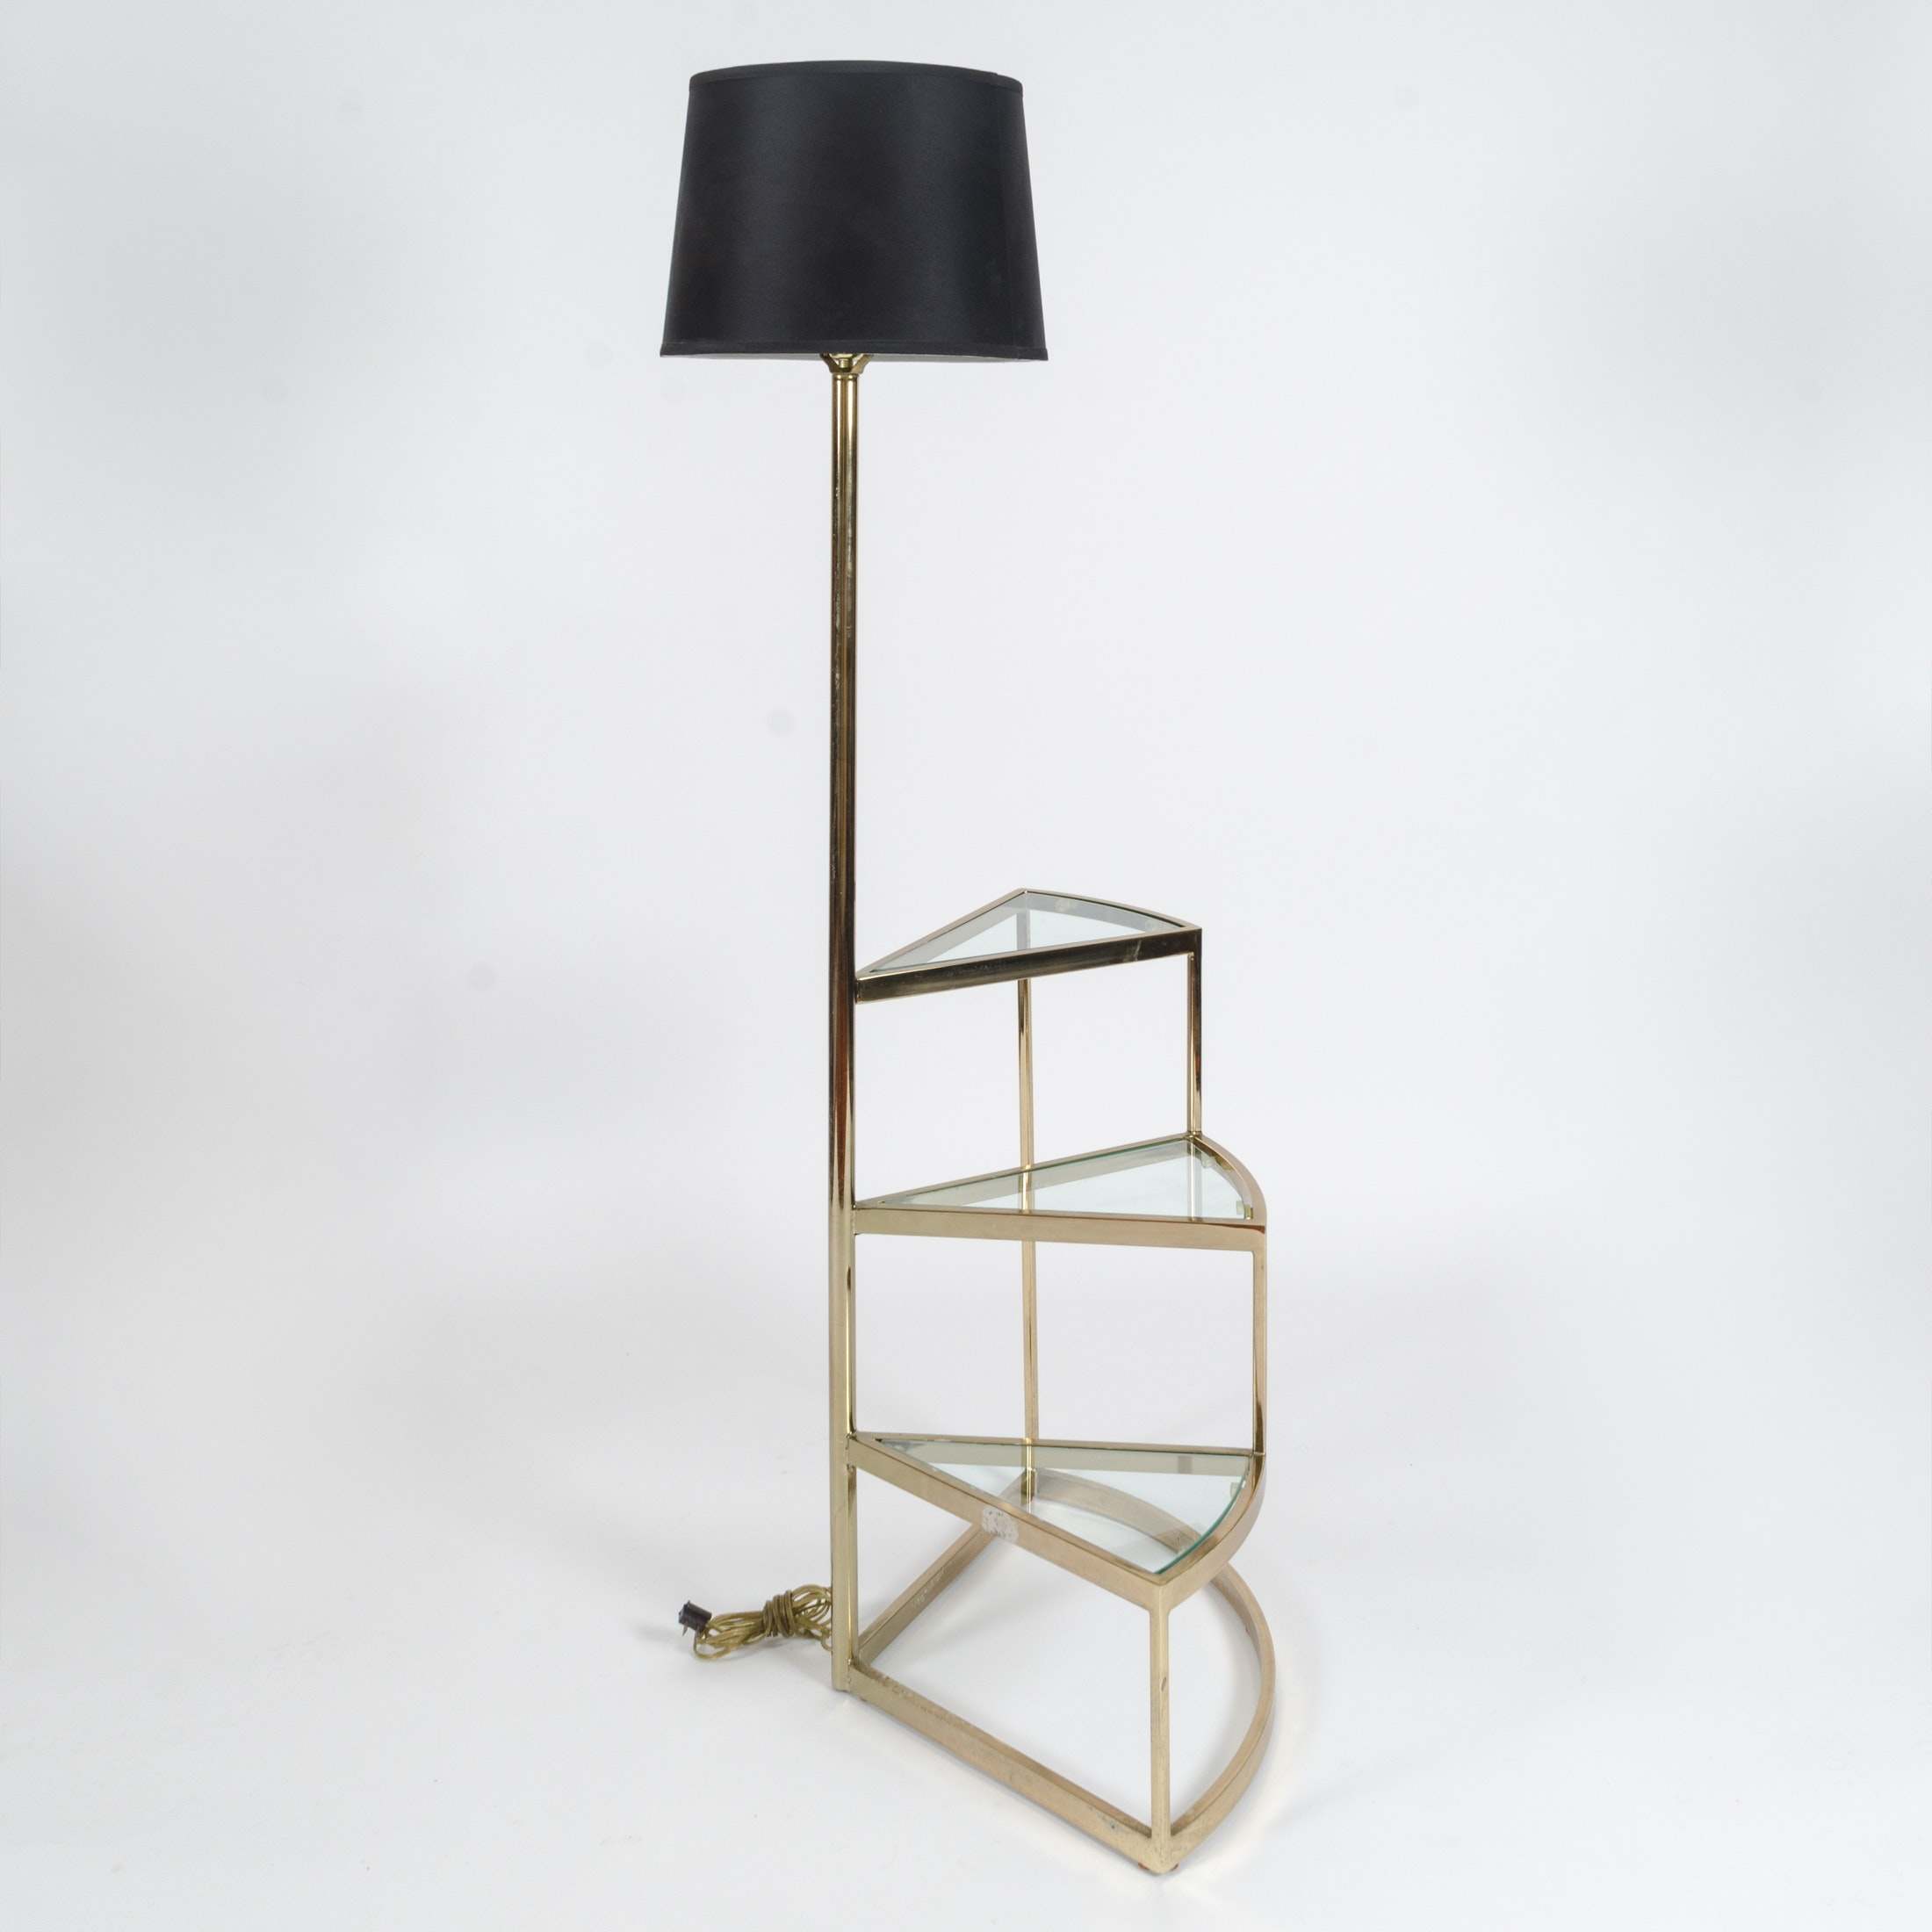 Tiered Lamp Table With Integrated Floor Lamp